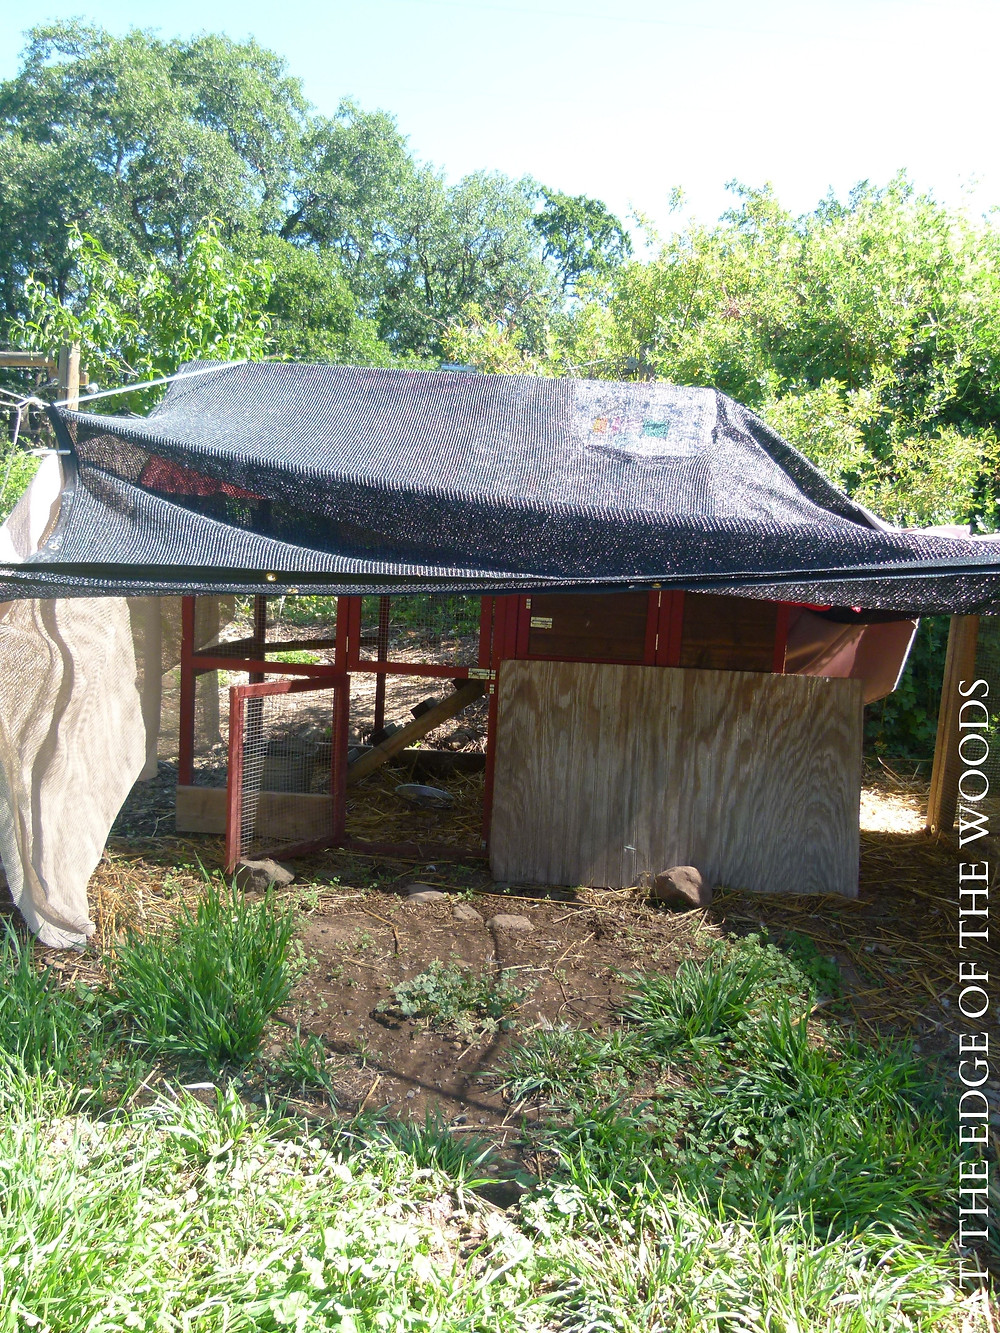 the shade cloths we have rigged up to keep the brooder cool